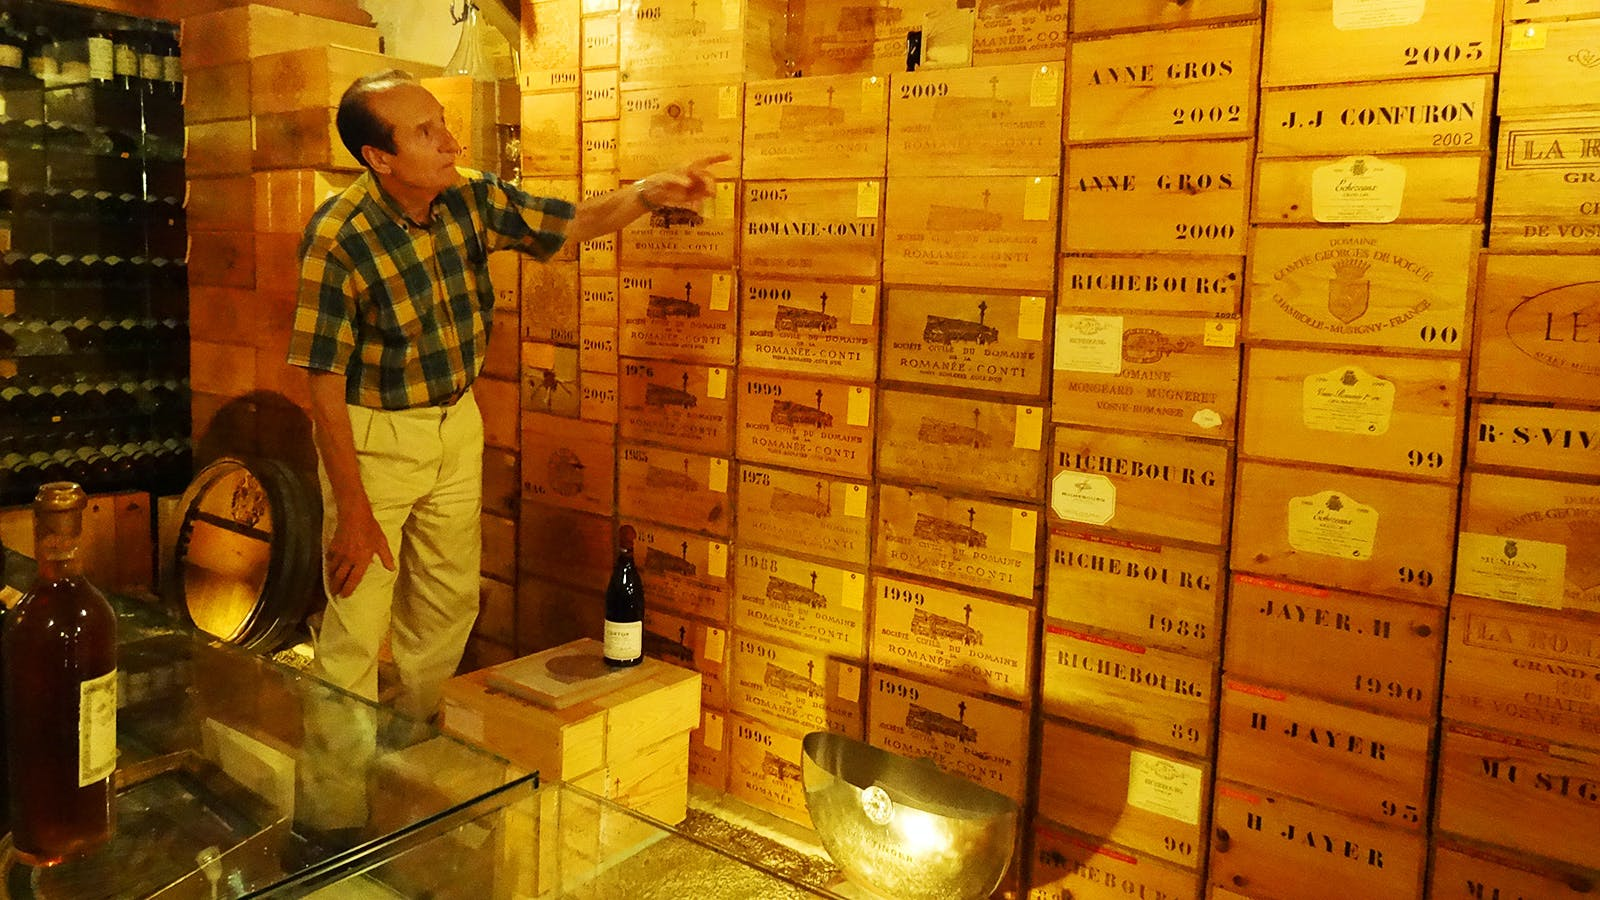 Four Men Convicted of Assaulting French Wine Collector in Attempted Cellar Robbery